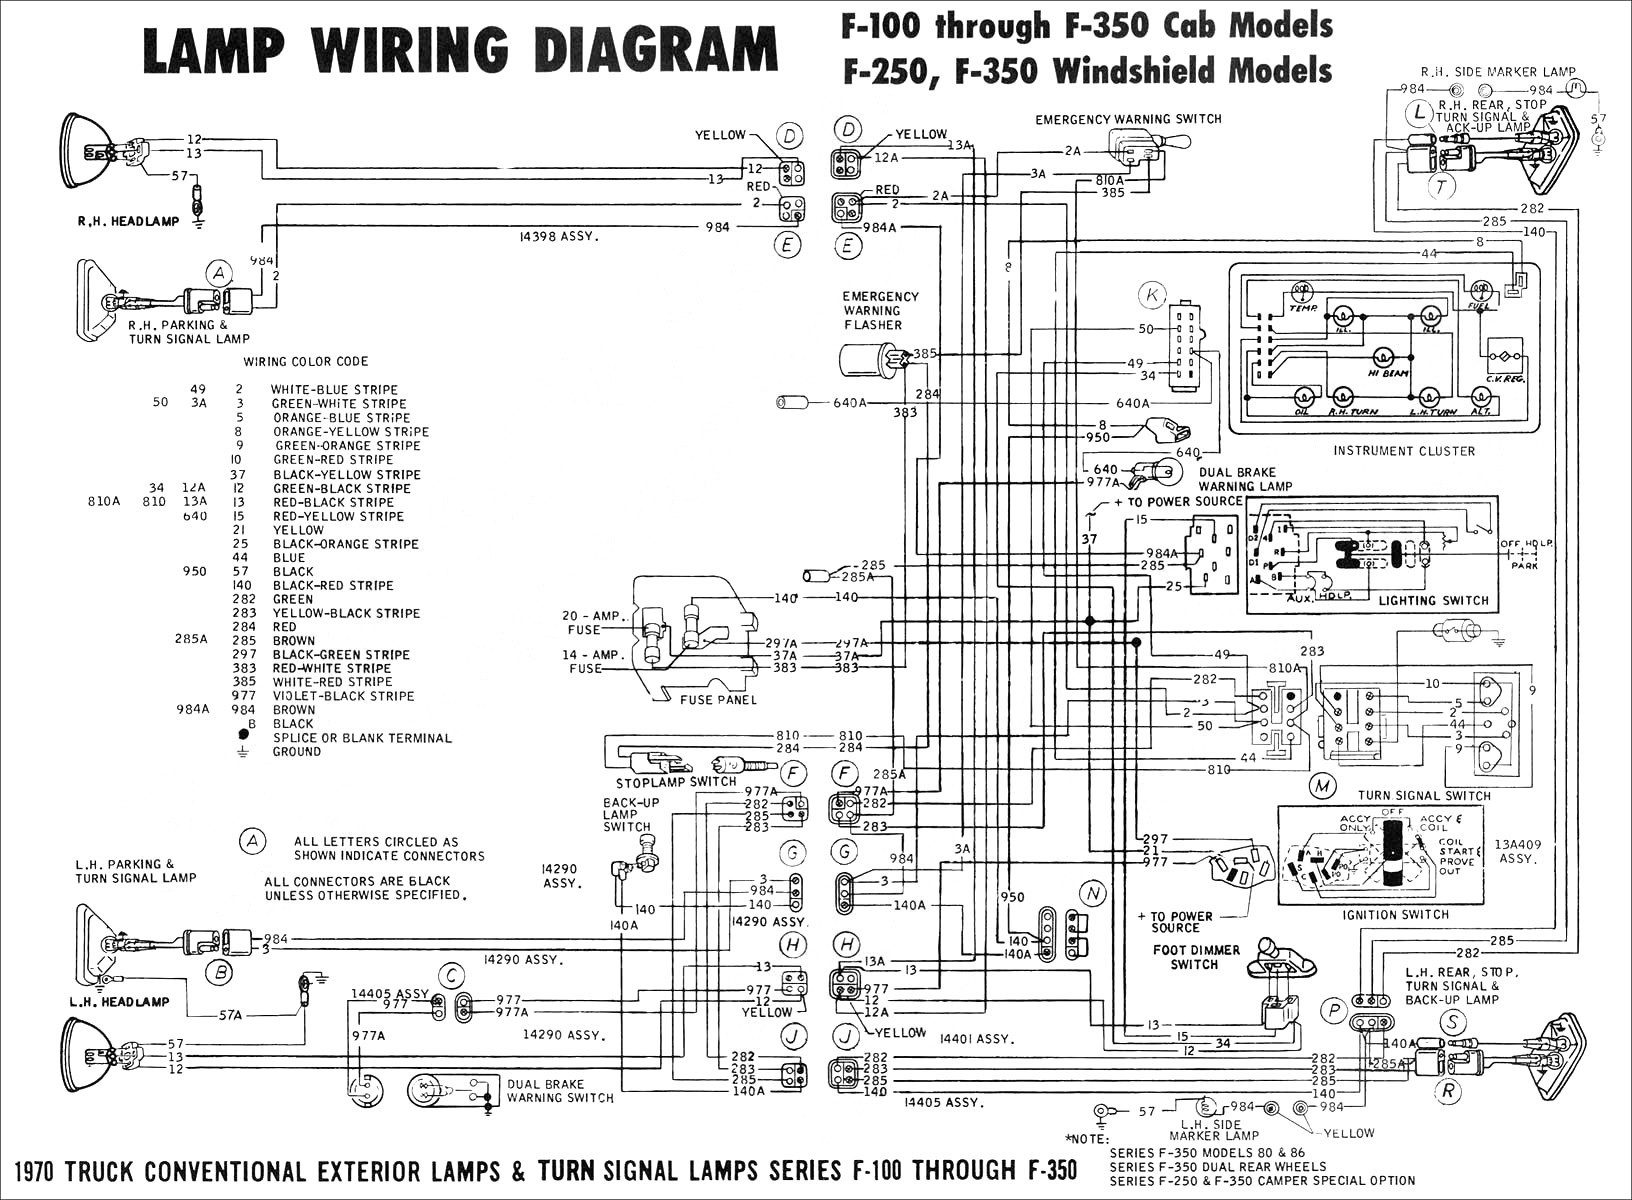 Ford Escape Trailer Wiring Diagram - Wiring Diagrams List on